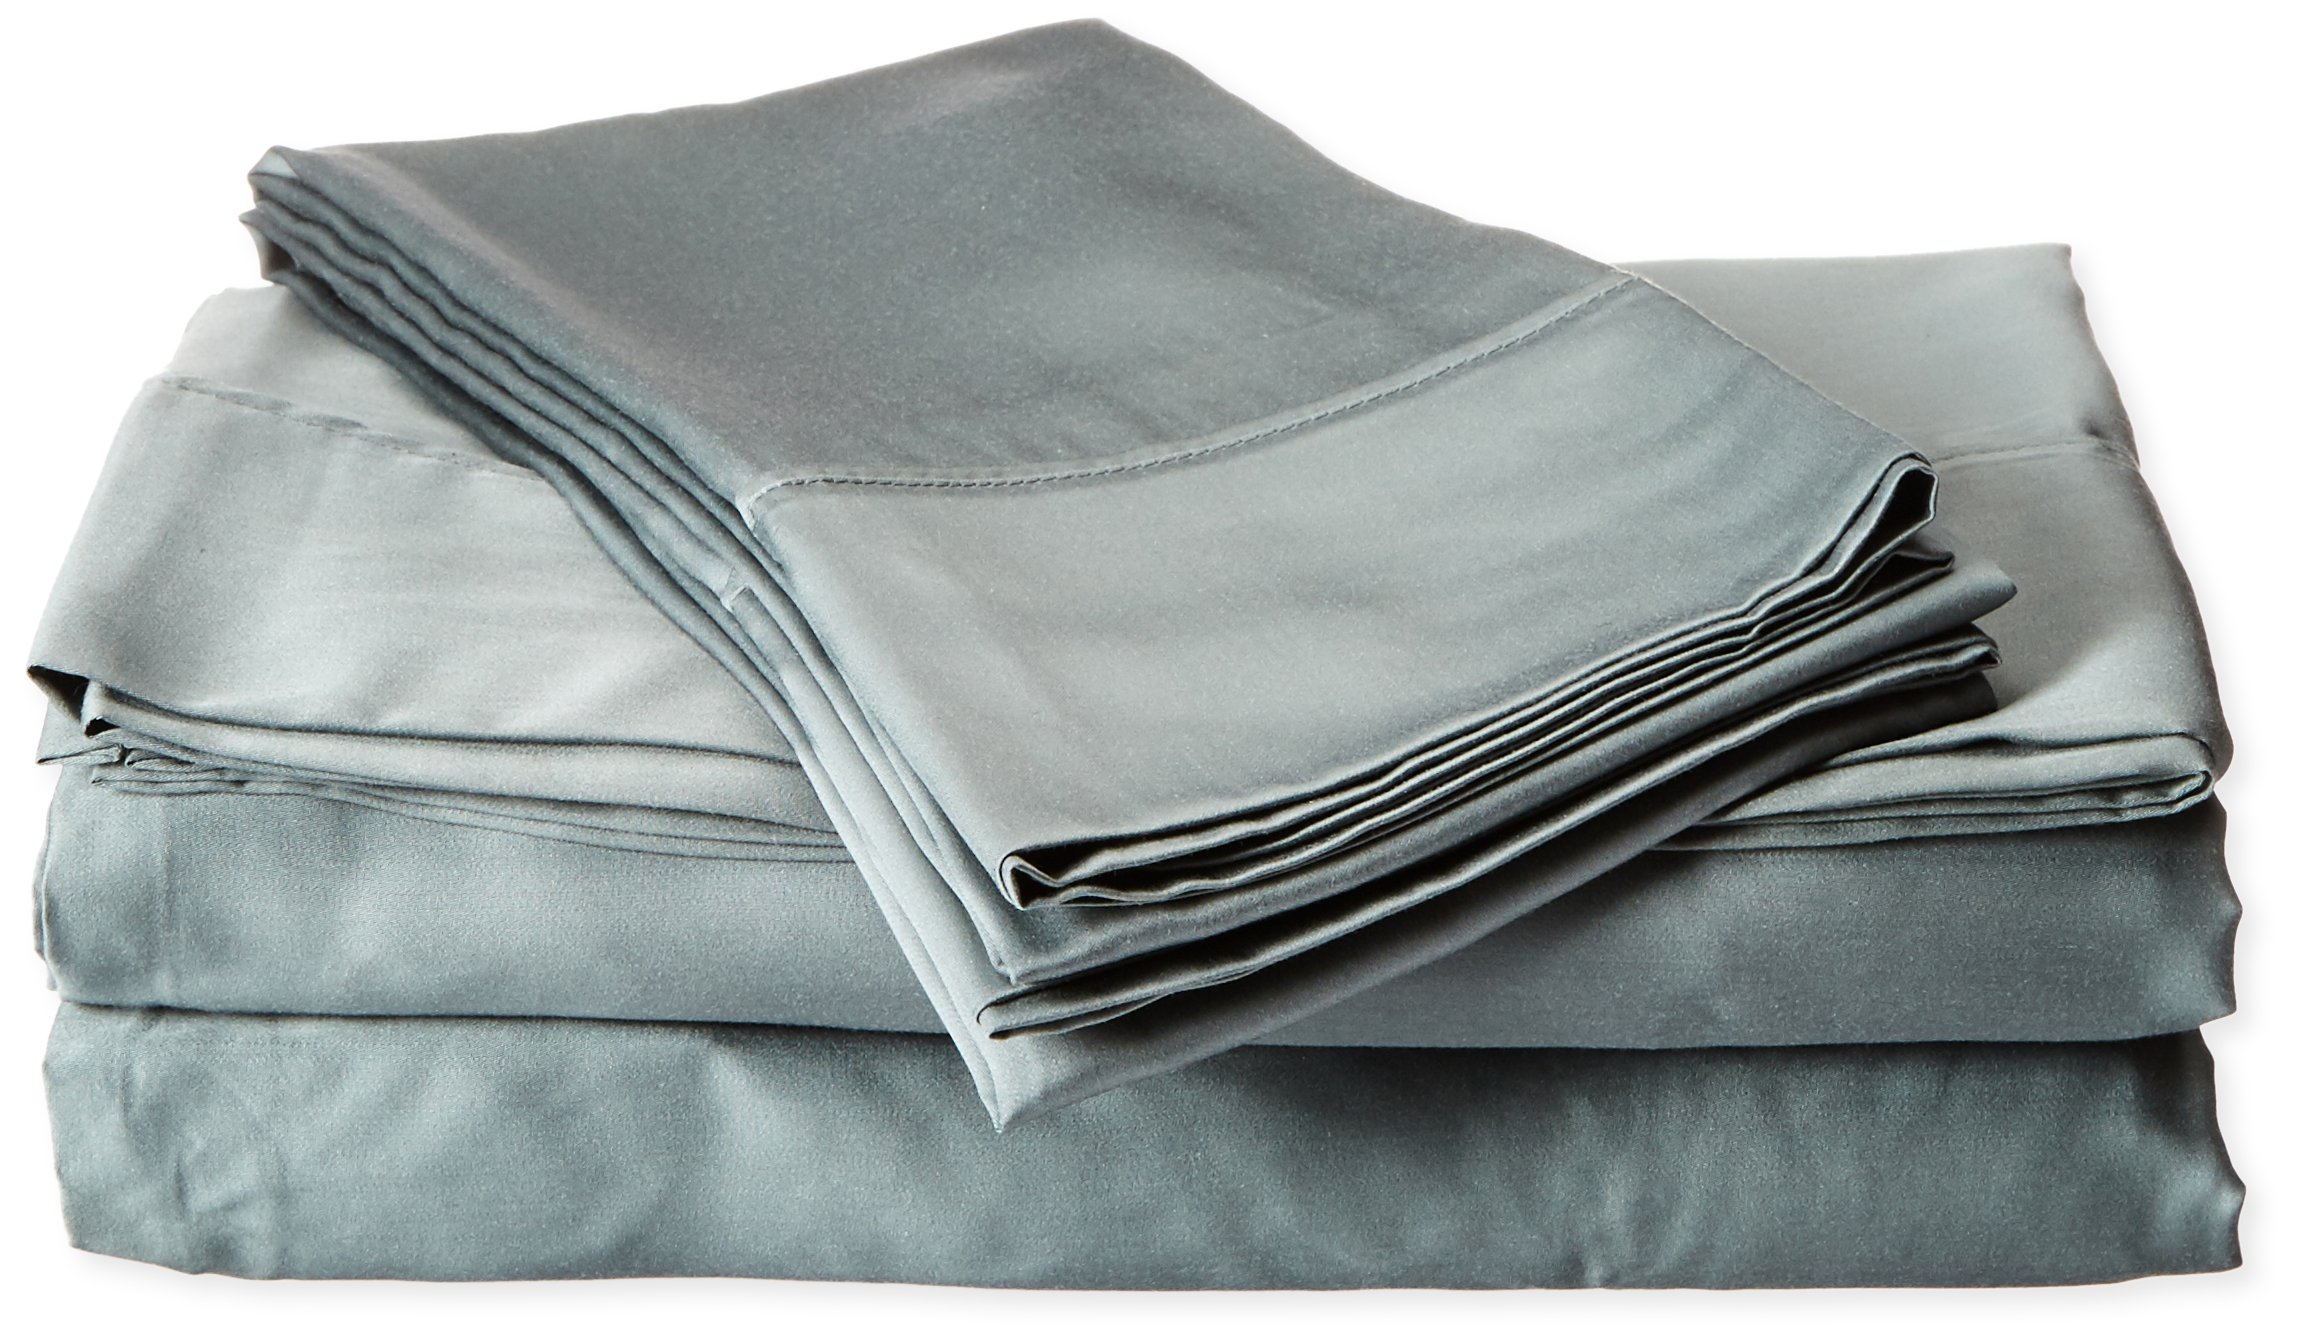 Brielle Sateen 100% Modal from Beech Pillow Case Set (Standard, Peacock) - Standard Pillow Case Set Includes 2 Standard Pillow cases (21x30 in.) Color options: White,Cream,Grey,Honey,Peacock,Sage,Navy,Red Materials:Modal (100-percent Rayon from Beech) - sheet-sets, bedroom-sheets-comforters, bedroom - 8106mb%2B7cmL -